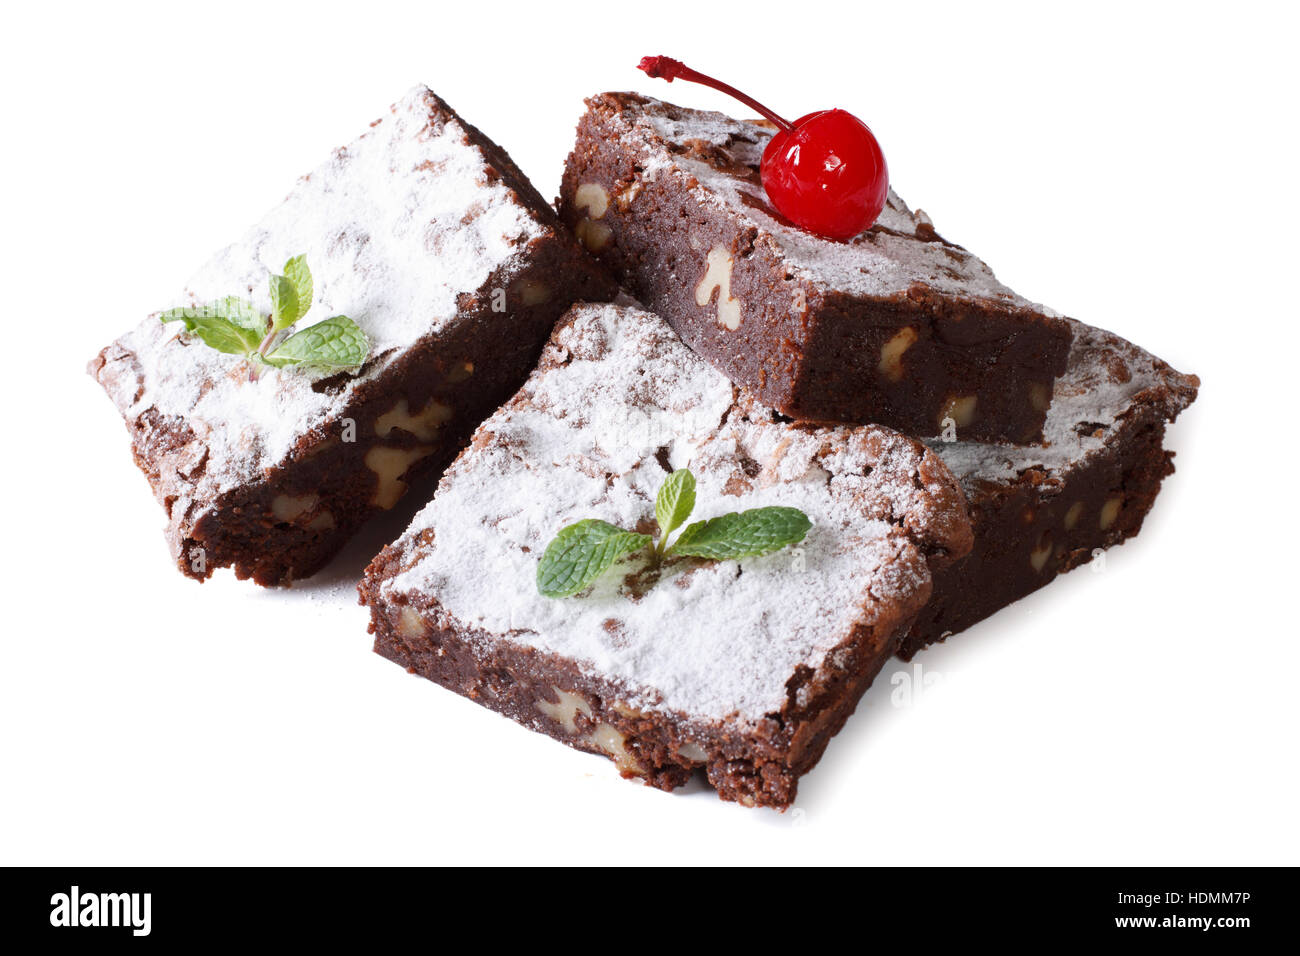 chocolate cake brownie with walnuts and cherries close-up. horizontal isolated on white background - Stock Image